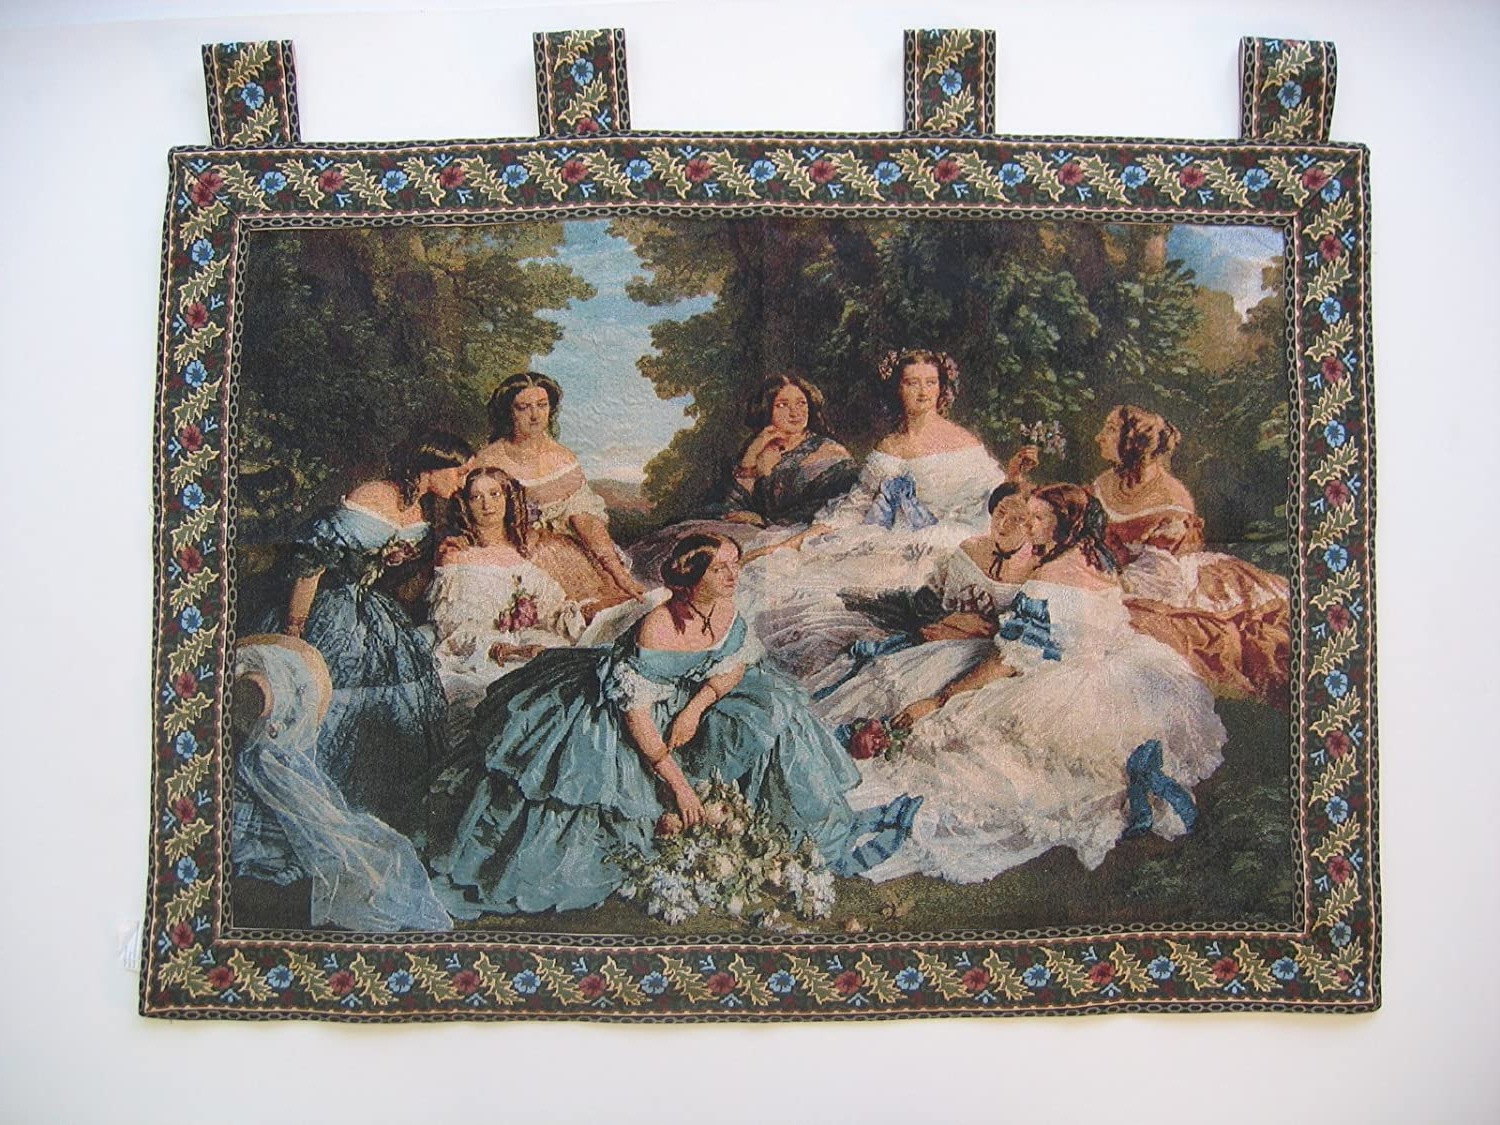 Dada Bedding Wh 11630 Classic French Rococo Woven Tapestry Wall Hanging, 36 50 Inch In Trendy Blended Fabric Classic French Rococo Woven Tapestries (View 2 of 20)